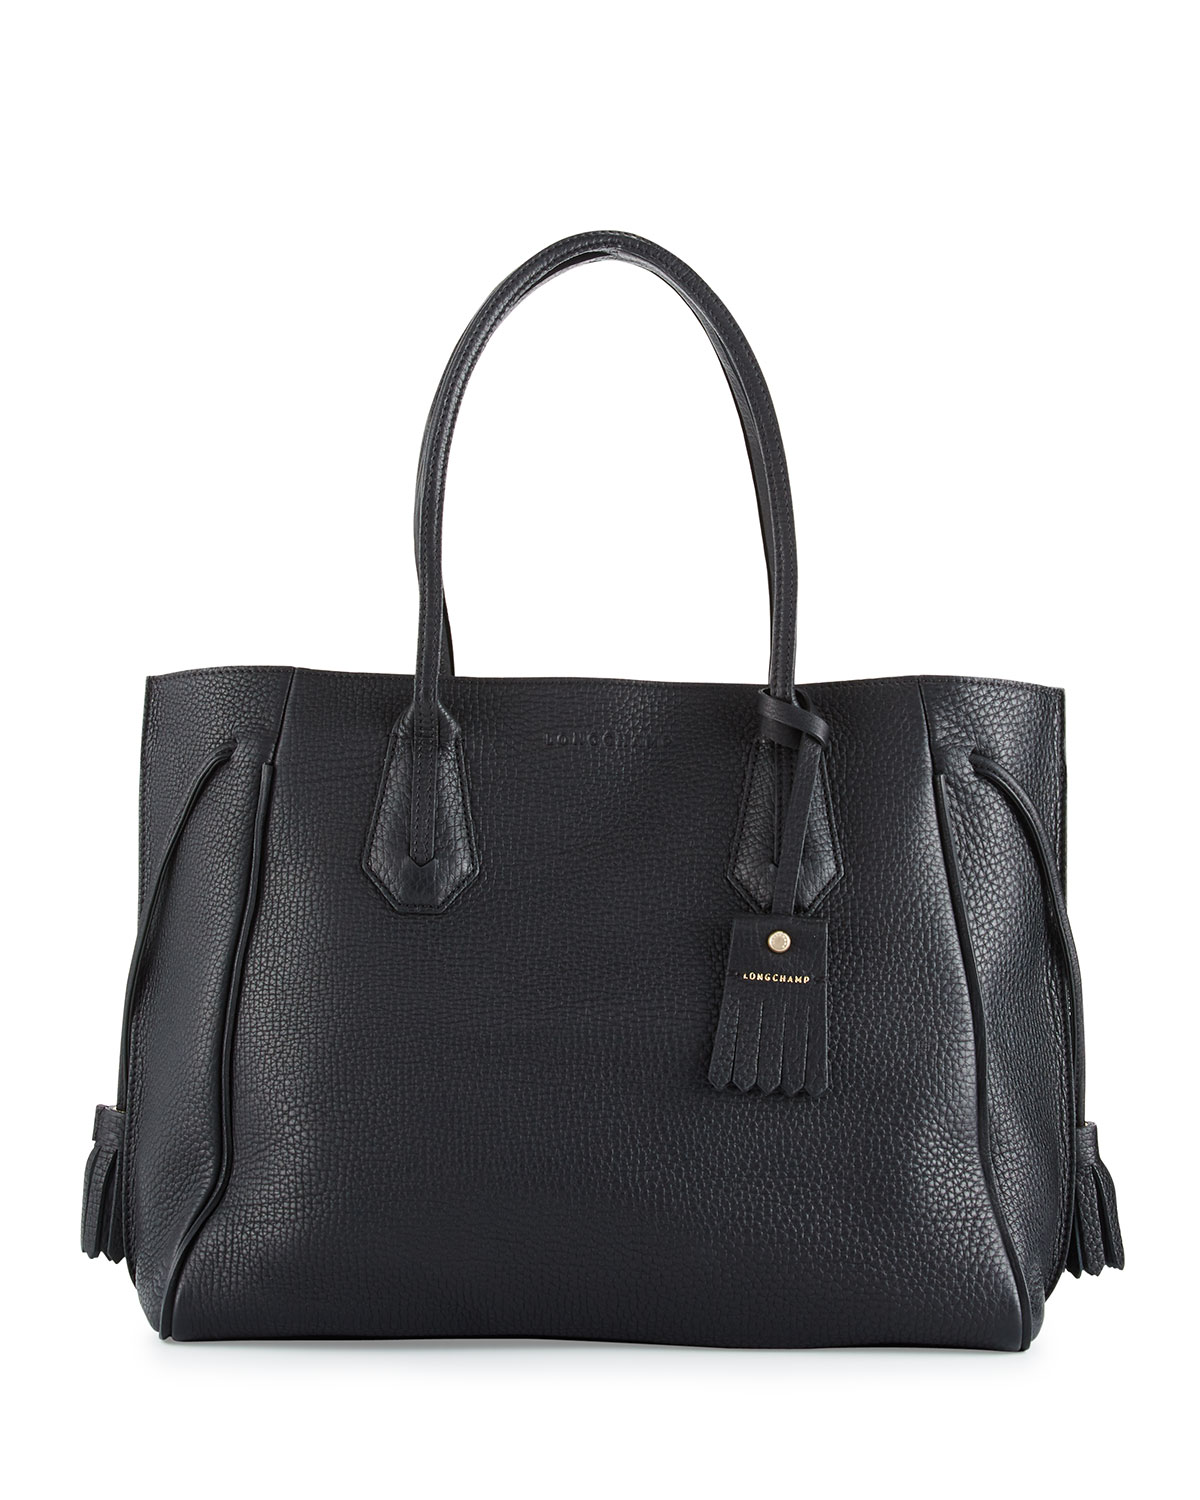 Quick Look. Longchamp · Penelope Large Leather Tote Bag. Available in Black c5ba22b83f2b8